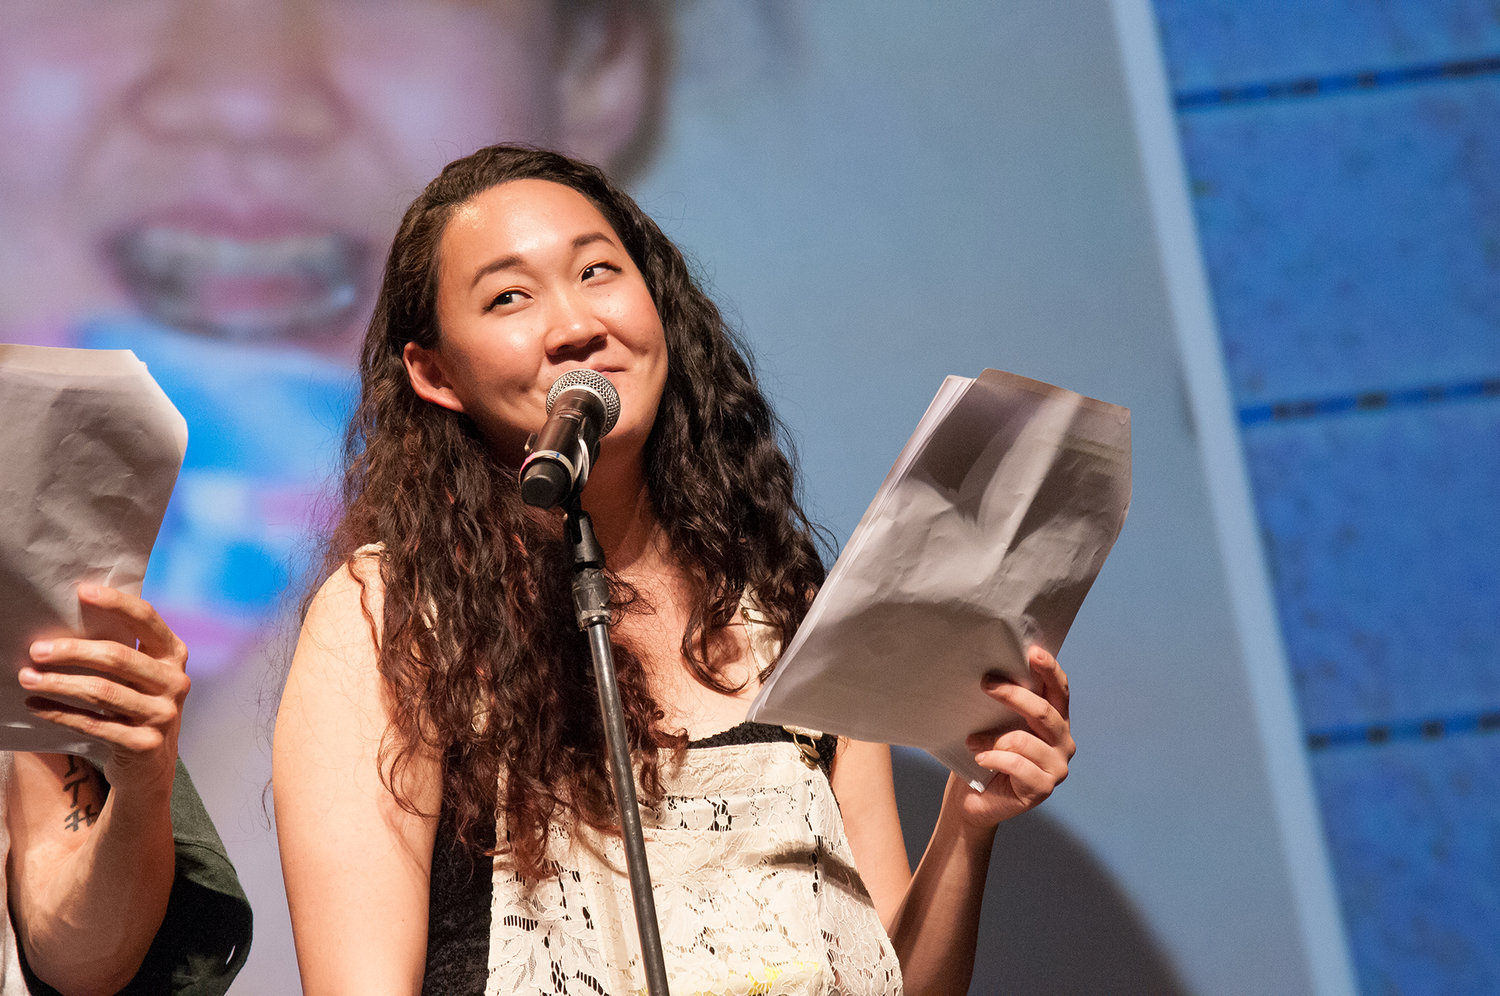 Naomi performing at the Aratani Theater for the Mortified's Guide to Growing Up Asian American at the Comedy Comedy Festival. August 26, 2016.